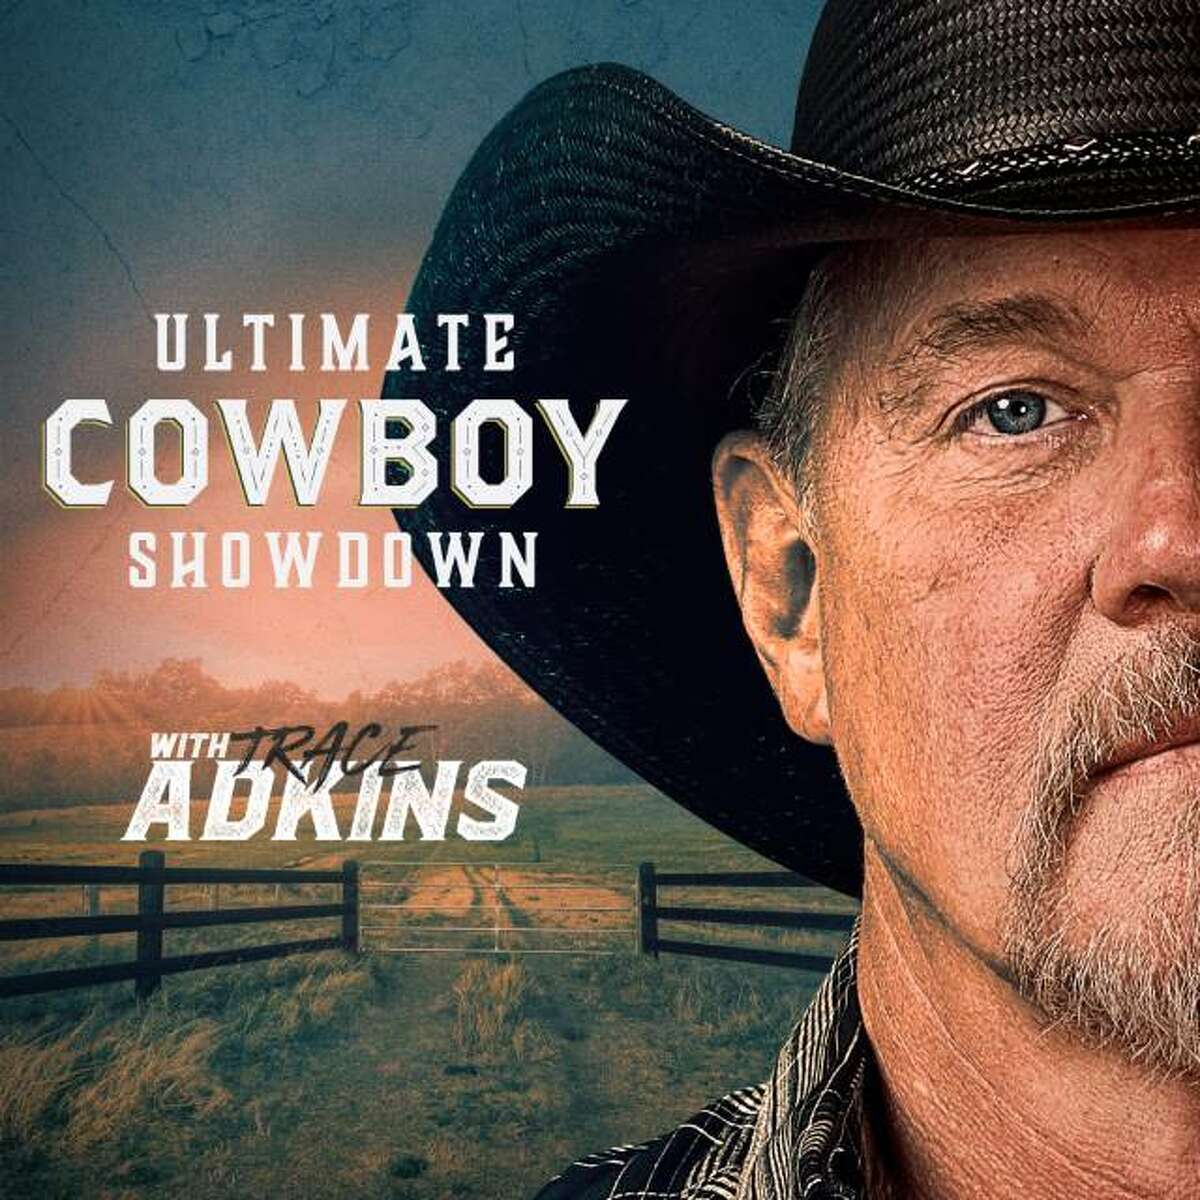 """Pearsall man John Paul """"JP"""" Gonzales plans on representing the San Antonio area in Inspo's second season of """"Ultimate Cowboy Showdown,"""" which is hosted by country star Trace Adkins."""